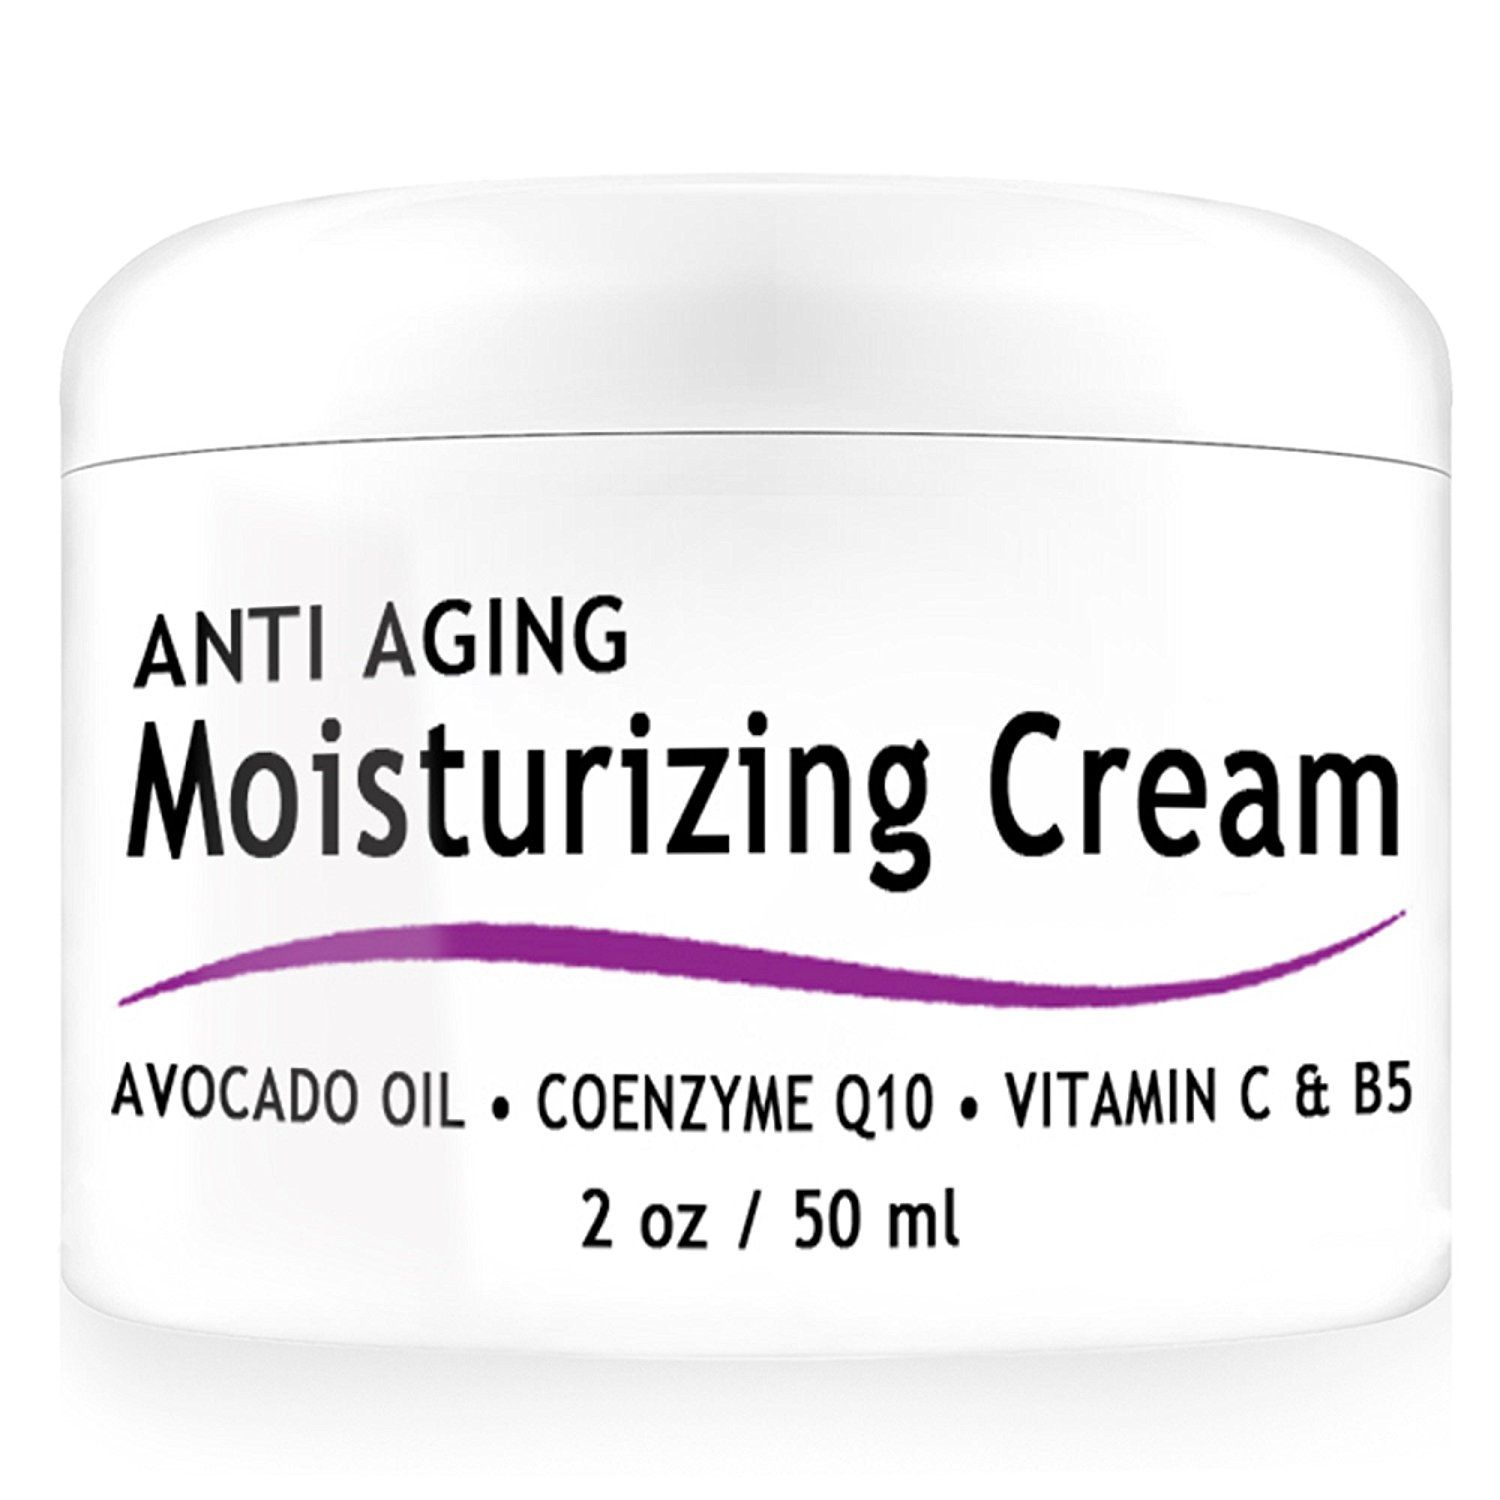 Ad Vent Products Organic Anti Aging Moisturizing Cream With Coenzyme Q10 Vitamin C And B5 For Dry Skin Moisturizer Cream Dry Skincare Face Products Skincare